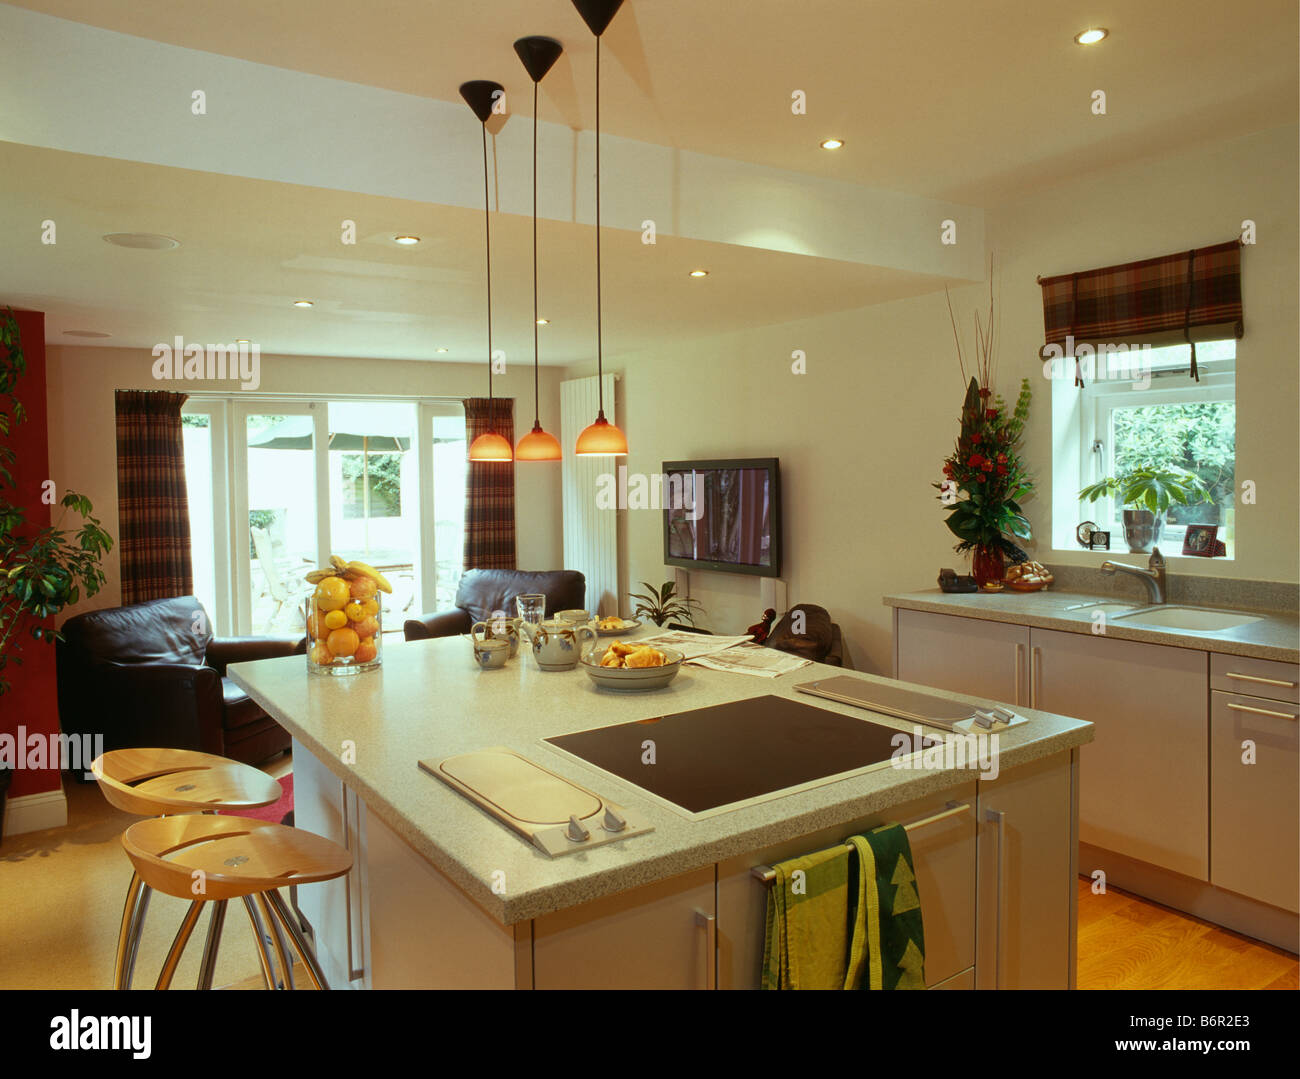 Small Orange Pendant Lights Above Island Unit With Fitted Halogen Hob In Modern White Kitchen